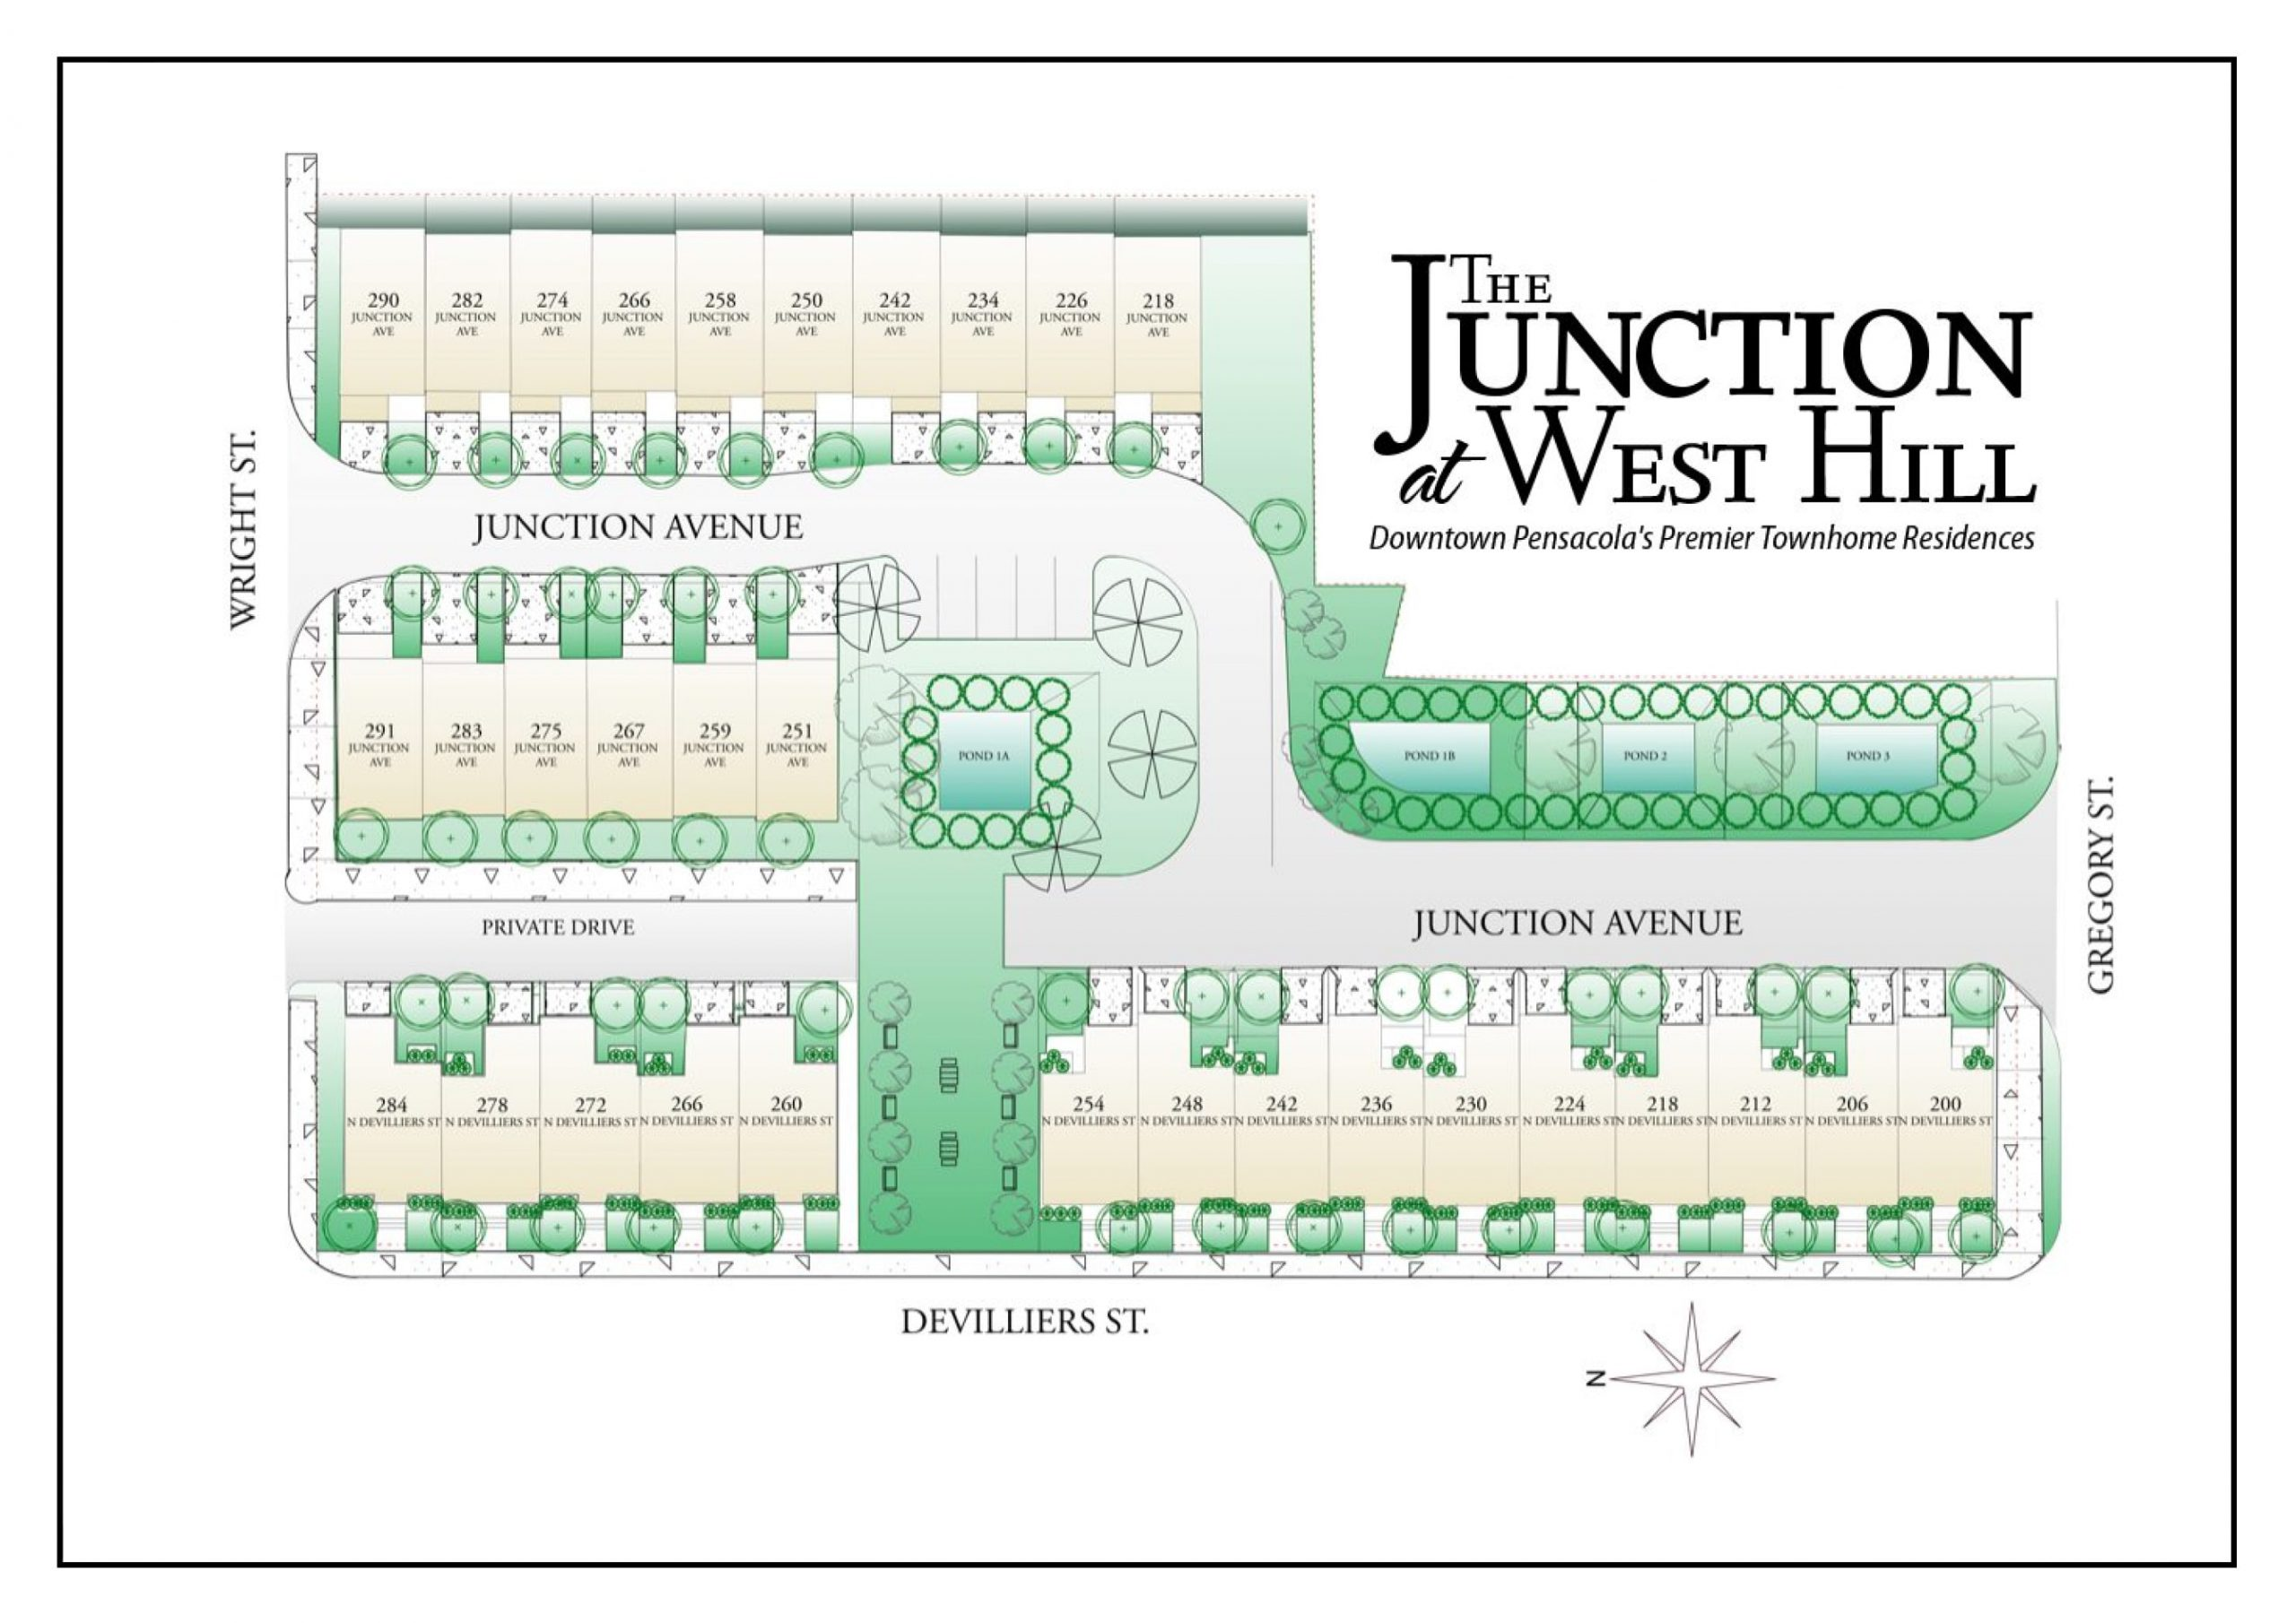 Junction at West Hill site plan.